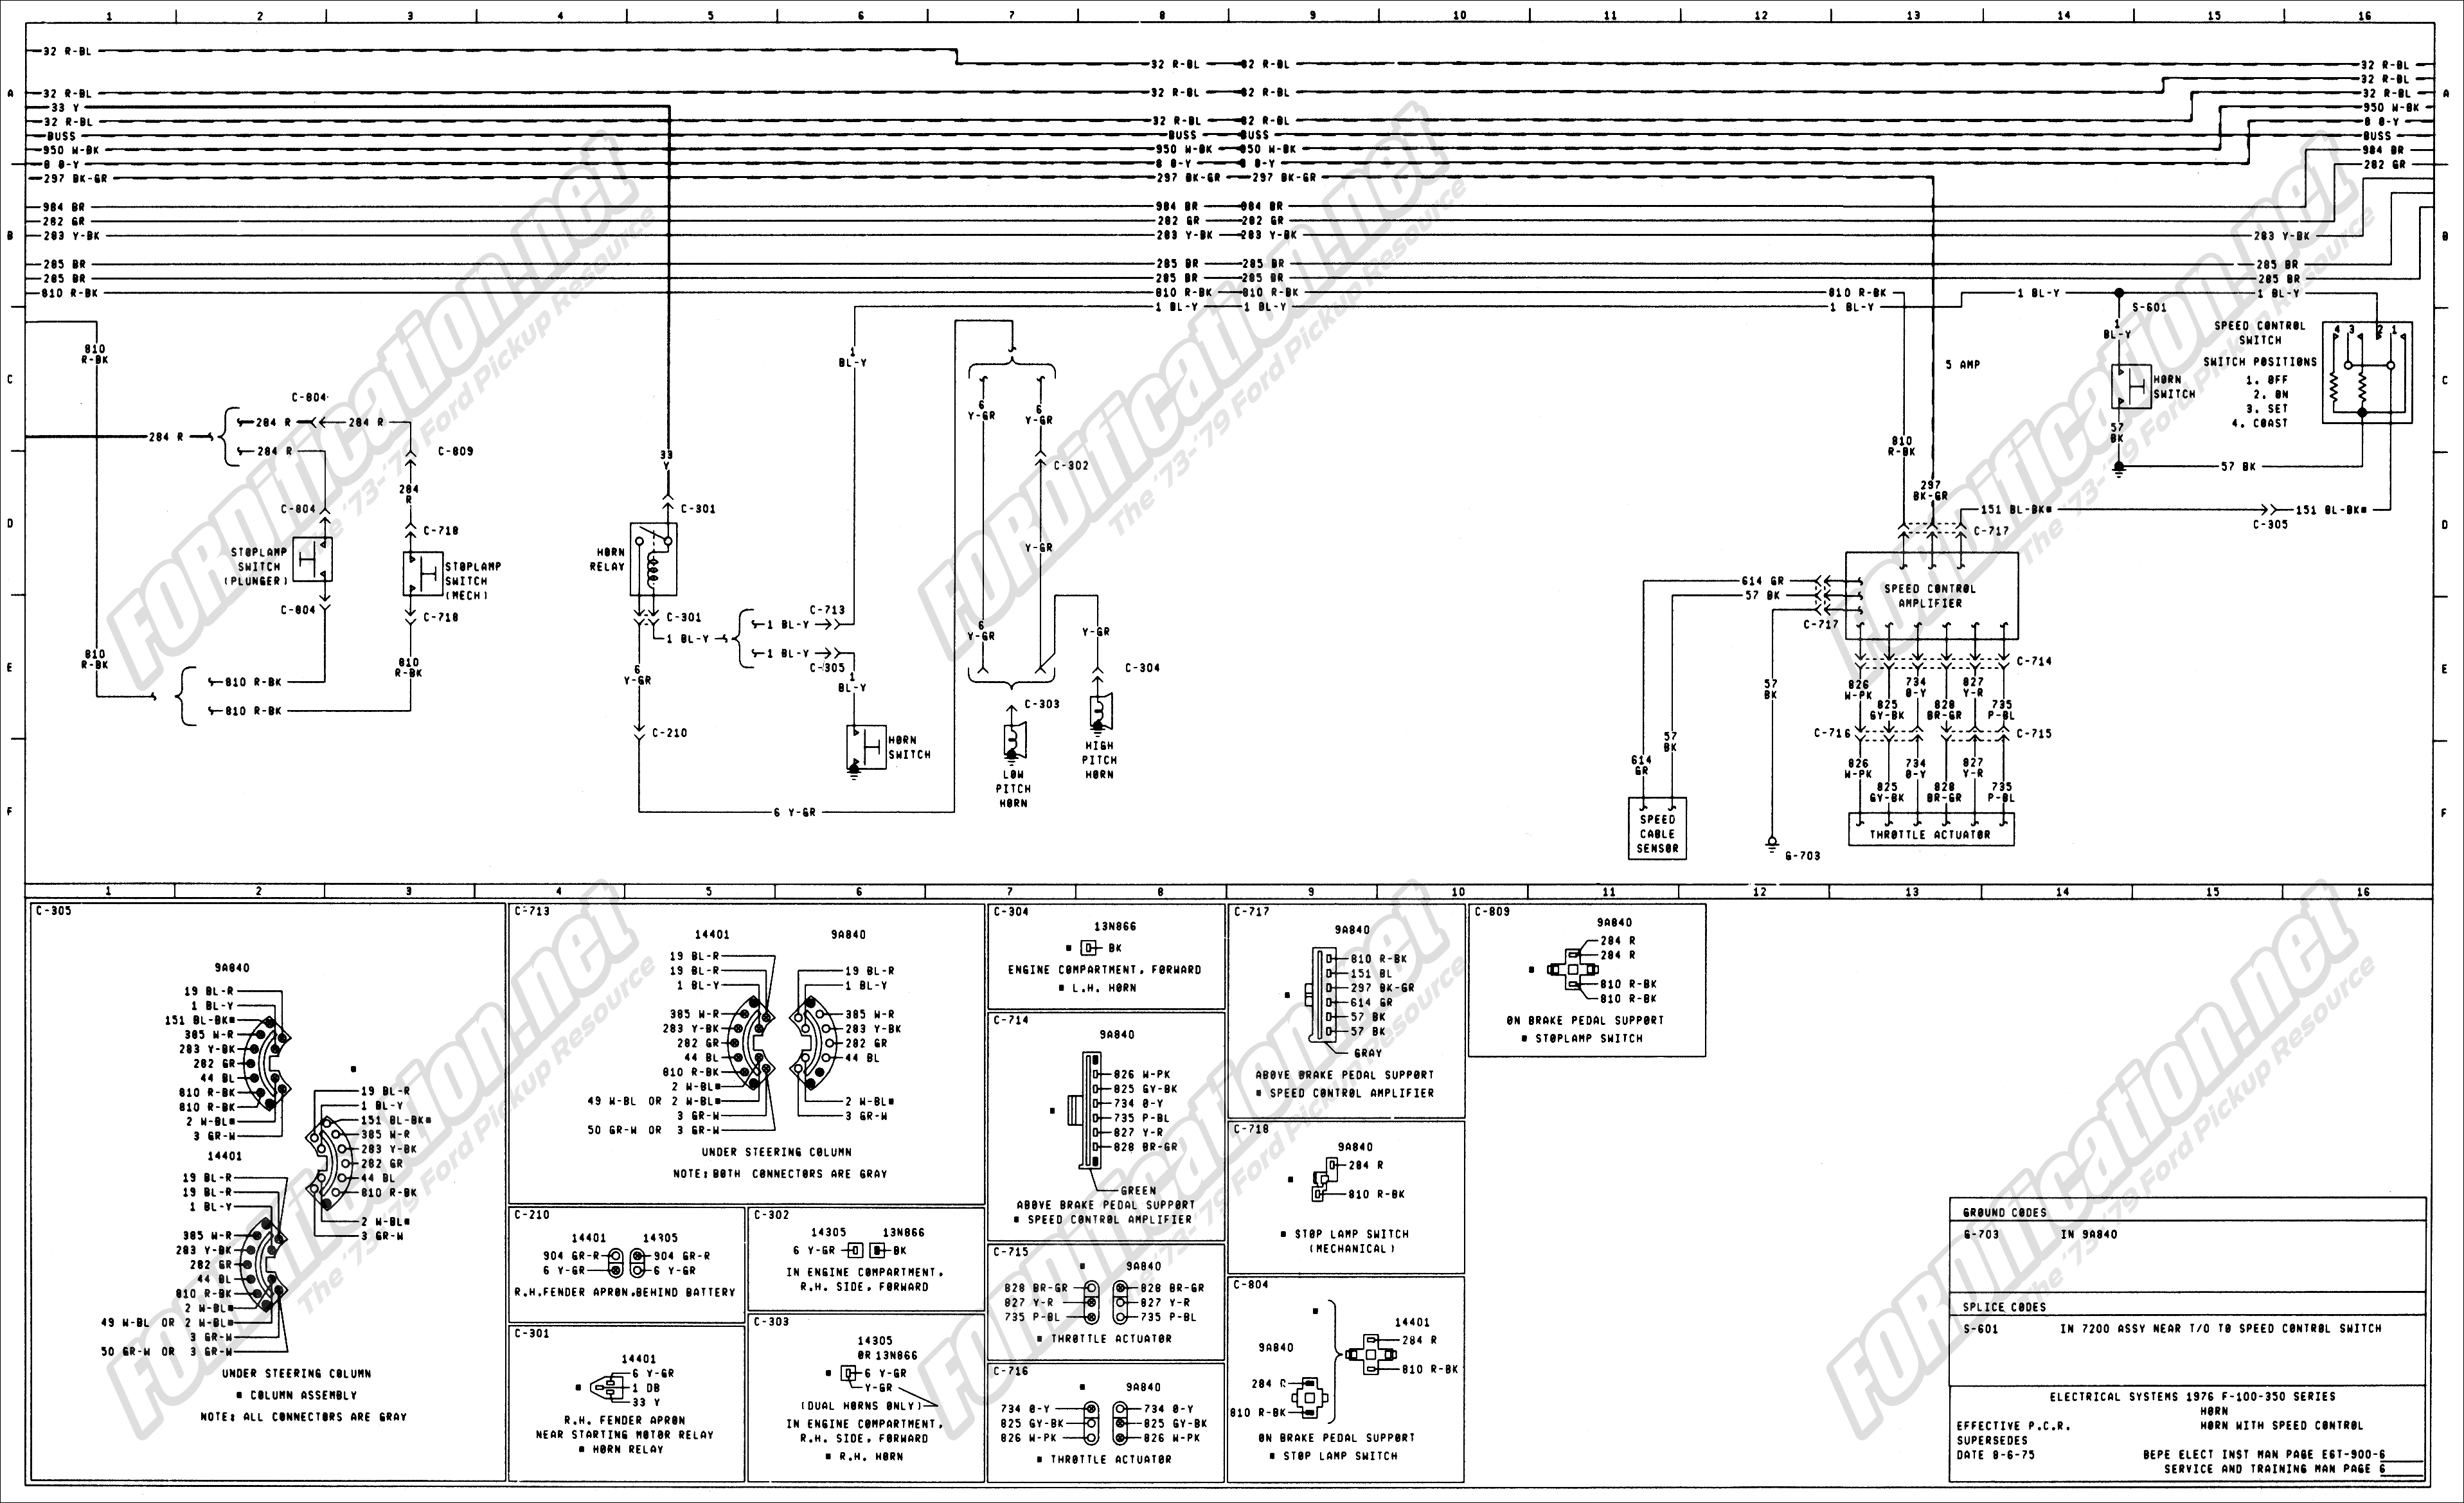 78 Ford Ignition Switch Wiring Diagram | Wiring Diagram  Ford F Ignition Wiring Diagram on 1969 ford f100 wiring diagram, 2004 ford f350 wiring diagram, ford aerostar wiring diagram, 2013 ford f350 wiring diagram, ford falcon wiring-diagram, ford flex wiring diagram, 1989 ford wiring diagram, 94 ford f350 wiring diagram, ford 7.3 diesel engine diagram, 1996 ford 7.3 powerstroke wiring diagram, ford super duty wiring diagram, ford e 350 wiring diagrams, ford econoline van wiring diagram, 6.0 powerstroke wiring diagram, ford f 450 wiring diagram, ford fairlane wiring diagram, ford thunderbird wiring diagram, 1965 ford galaxie 500 wiring diagram, ford f 350 engine diagram, ford transit wiring-diagram,